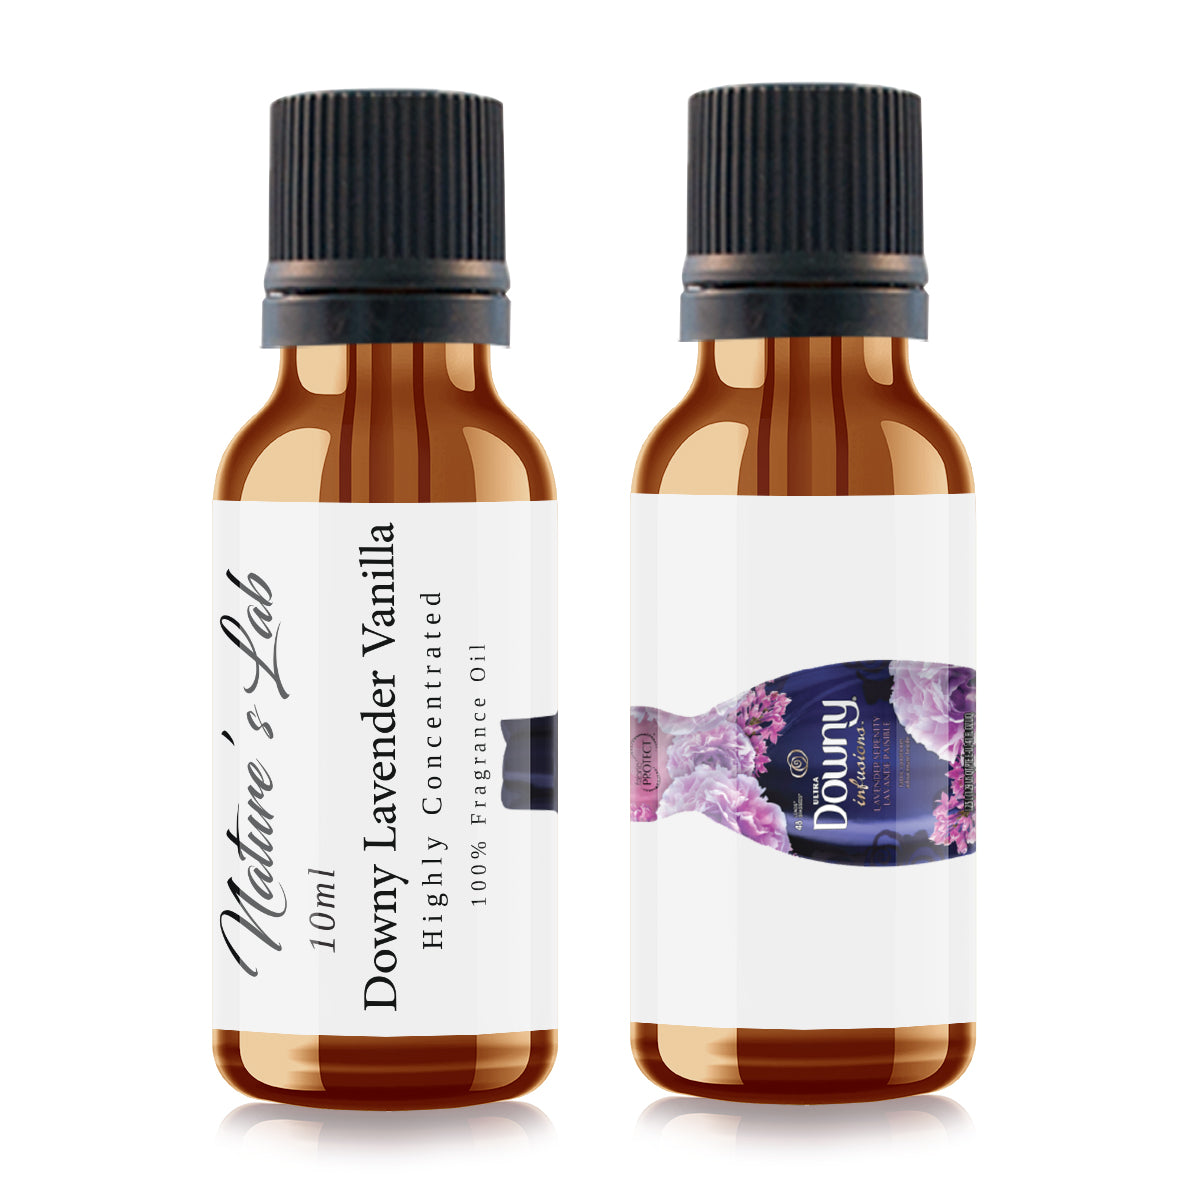 Downy Lavender and Vanilla Fragrance Oil